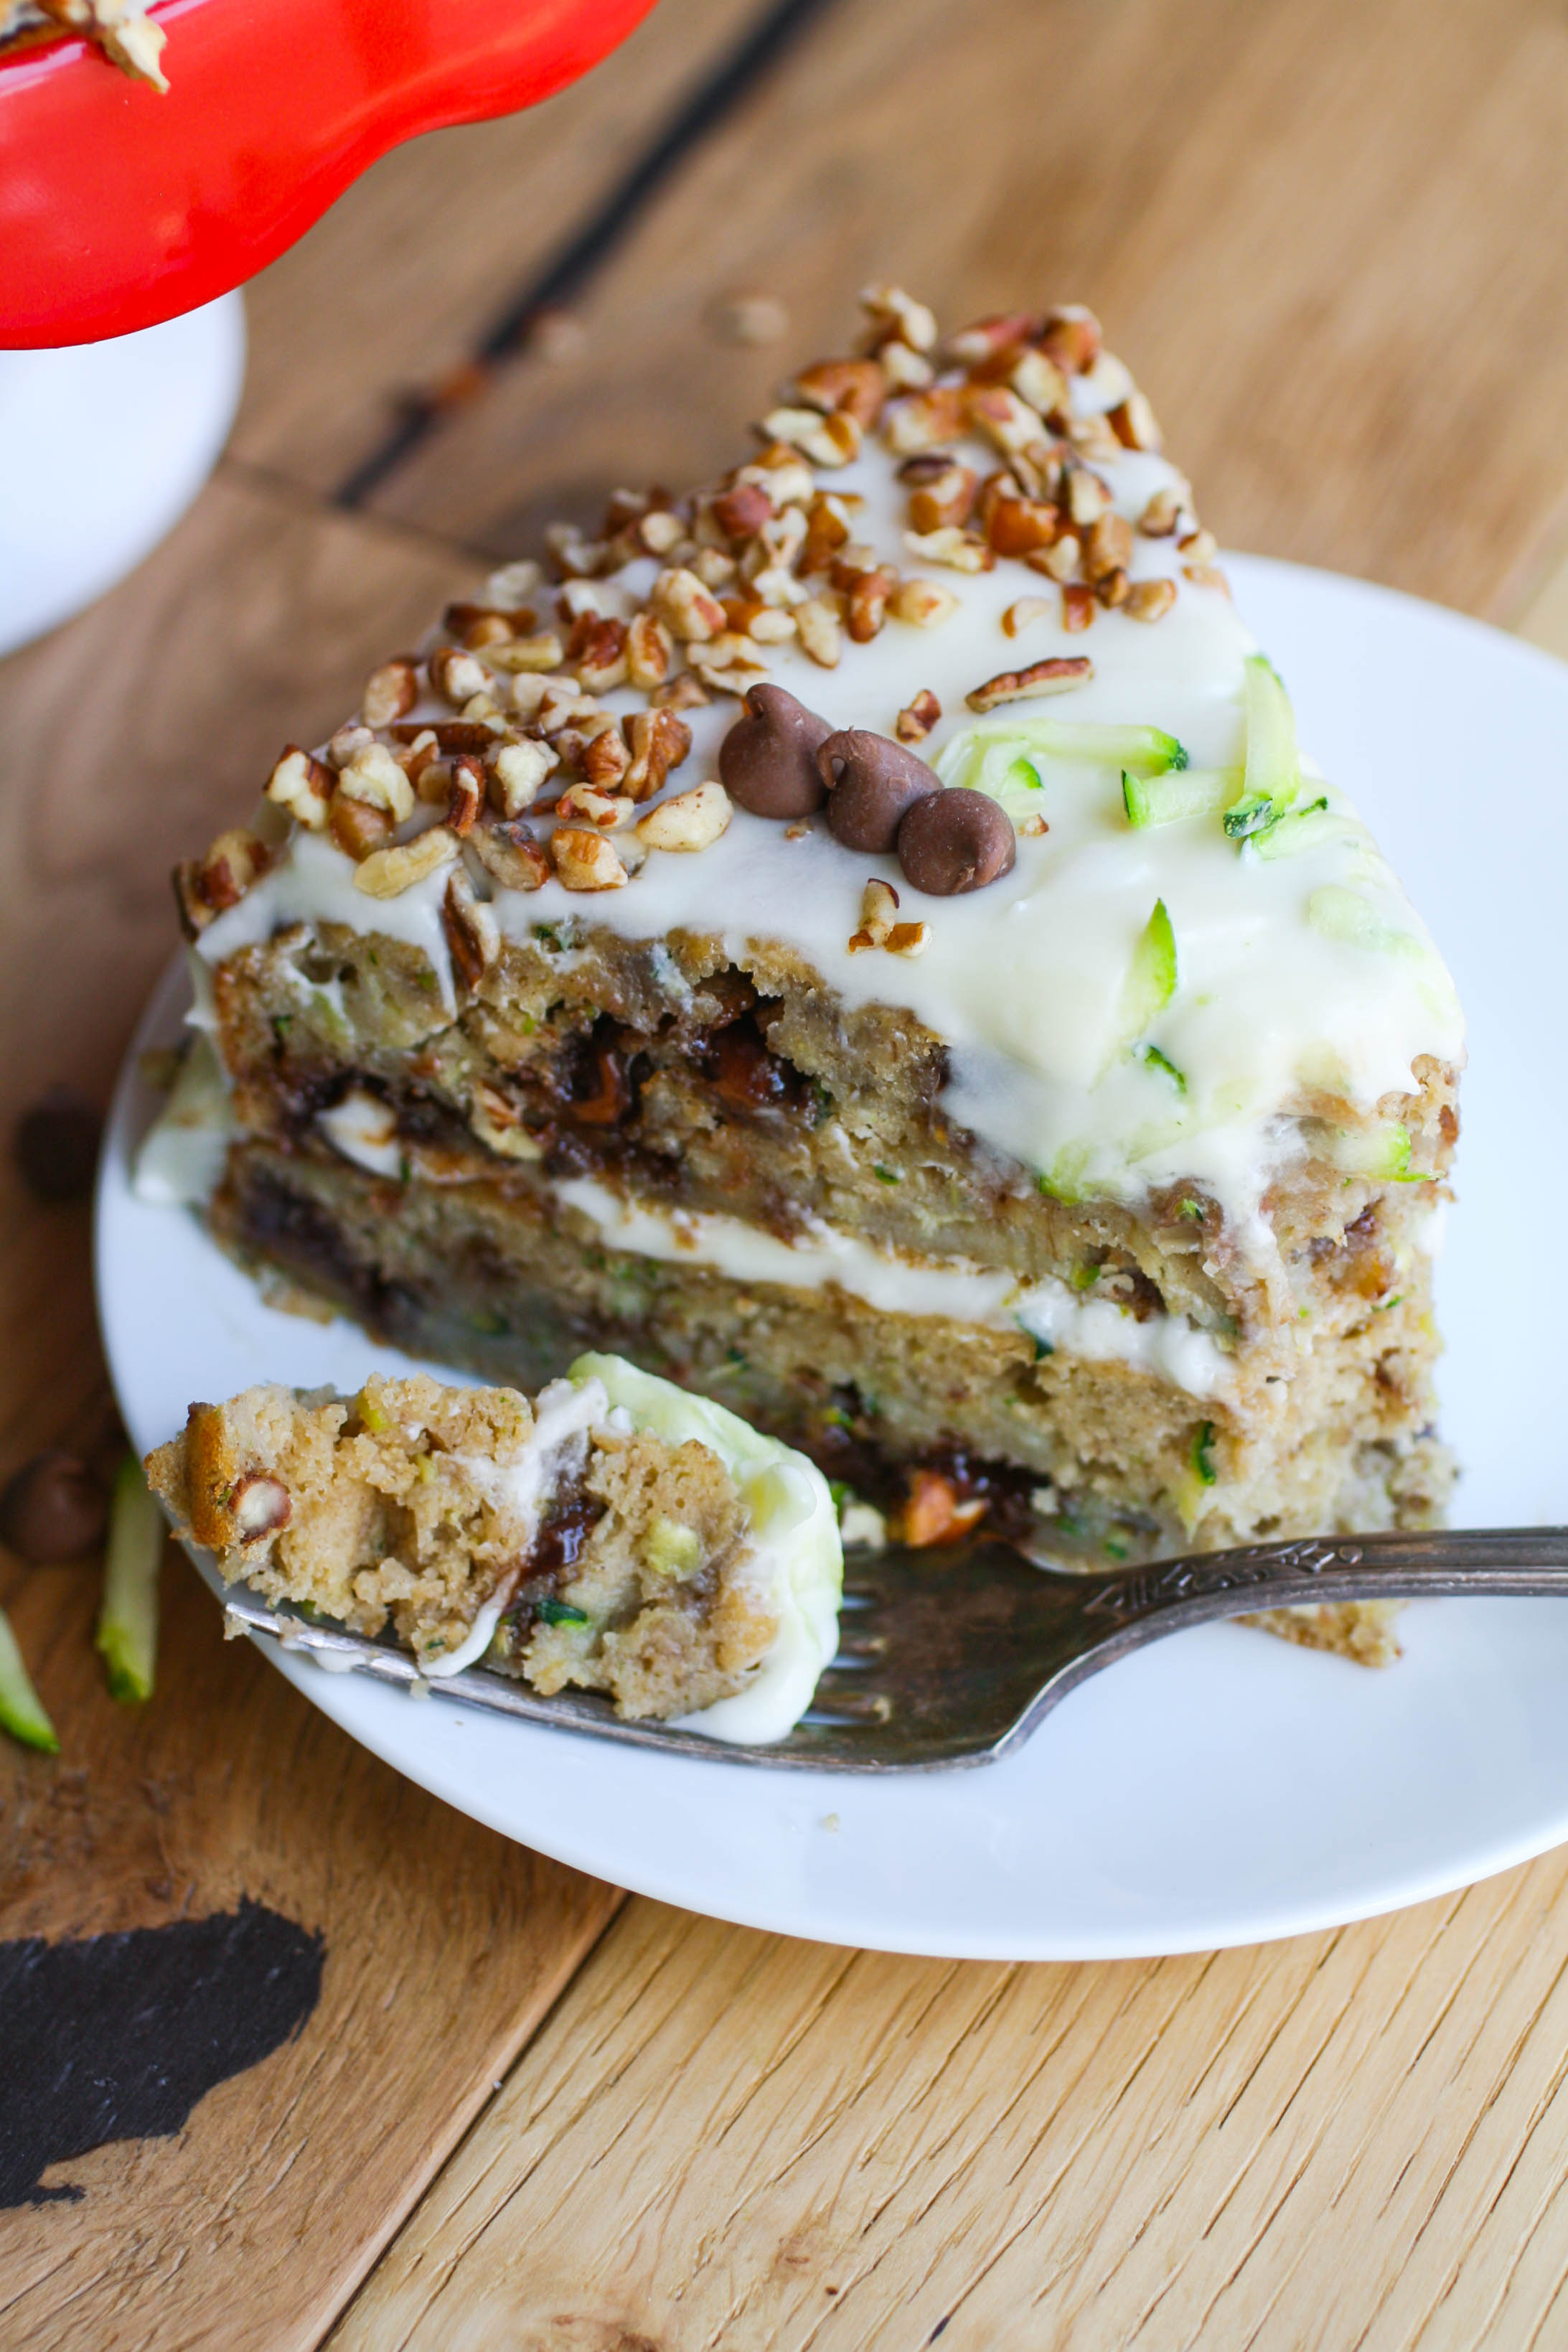 Zucchini-Banana Cake with Cream Cheese Frosting is a cake you'll love! This dessert is quite a treat!